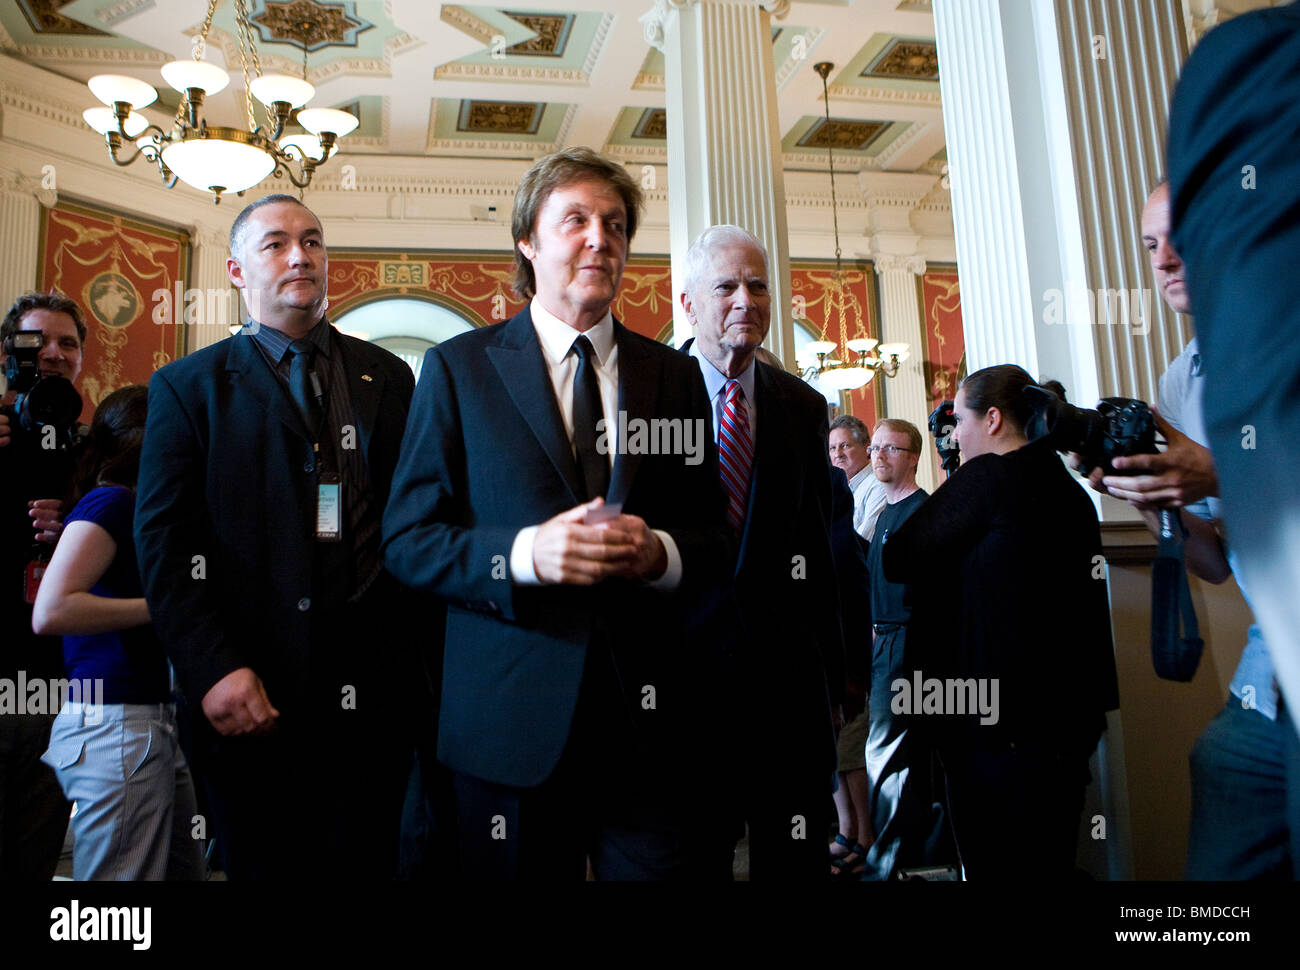 Paul McCartney takes questions at a press conference. - Stock Image